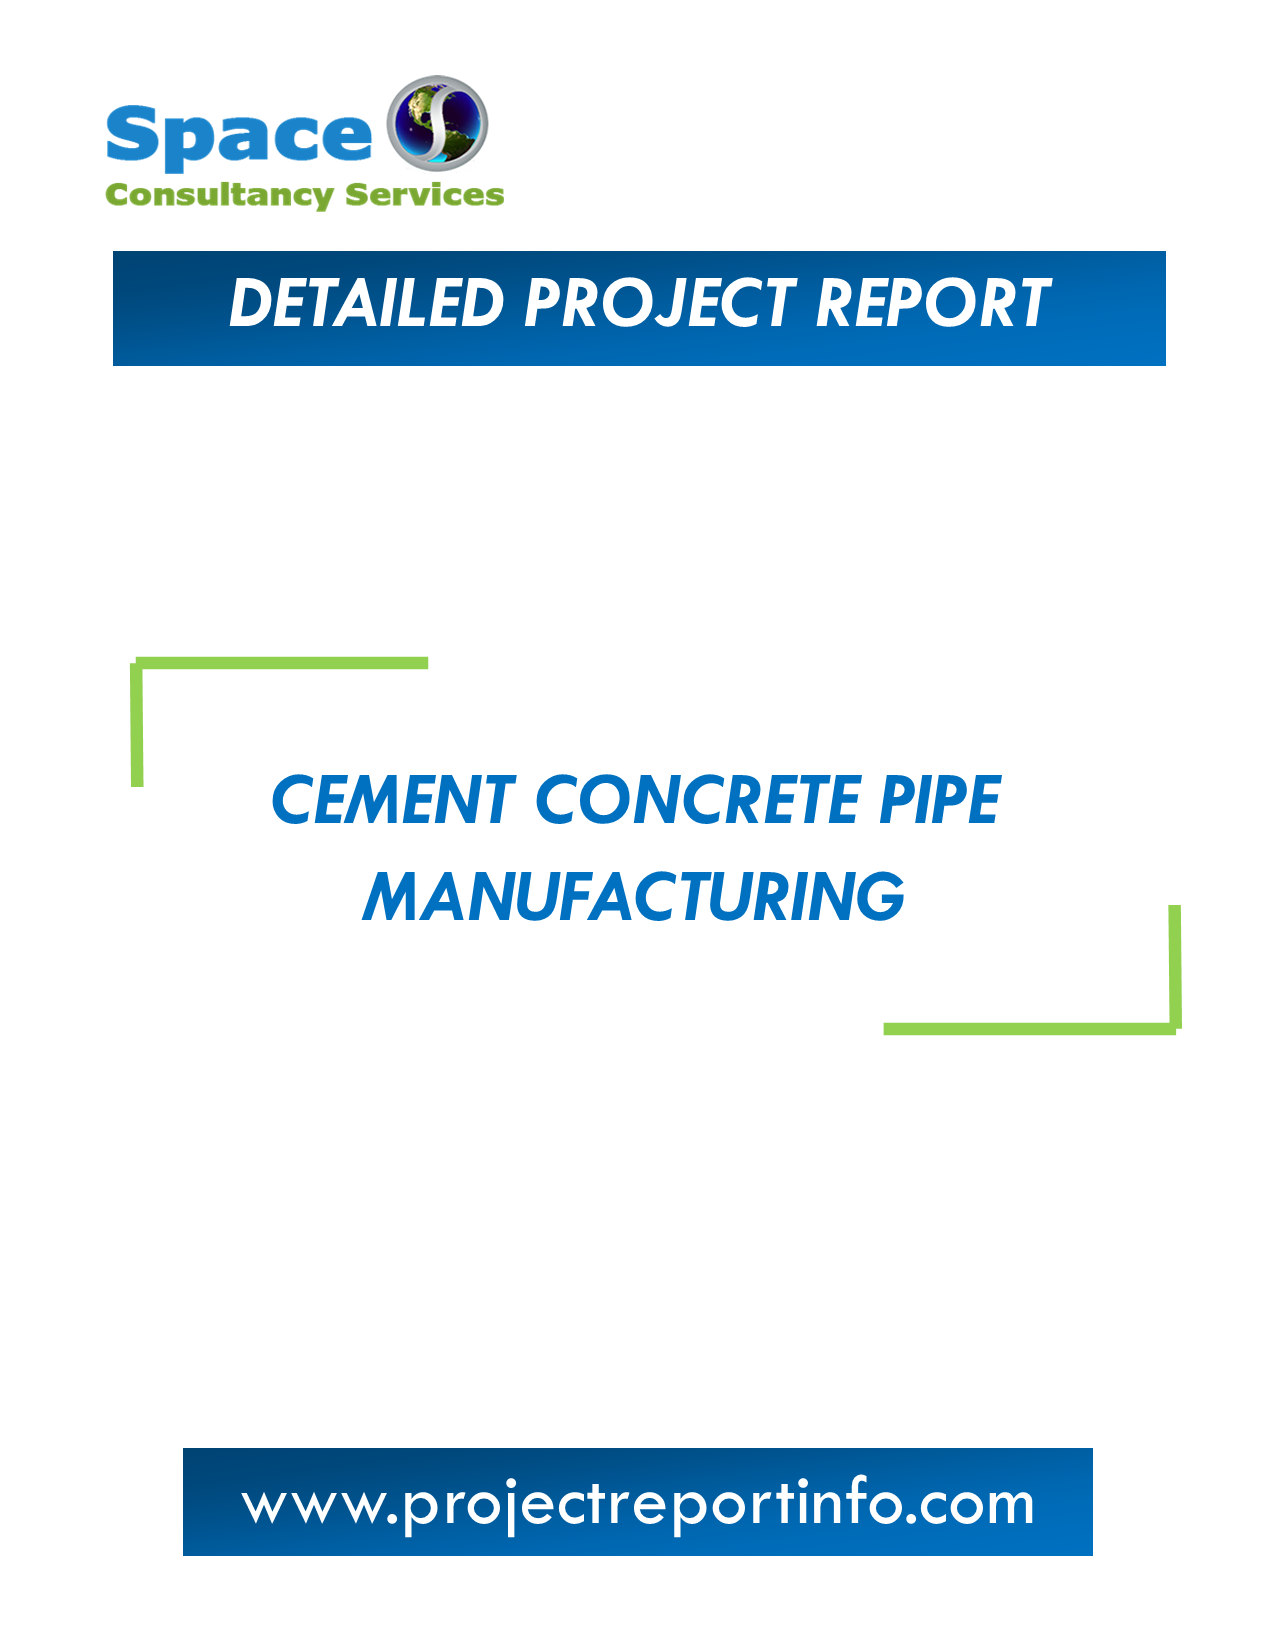 Project Report on Cement Concrete Pipe Manufacturing